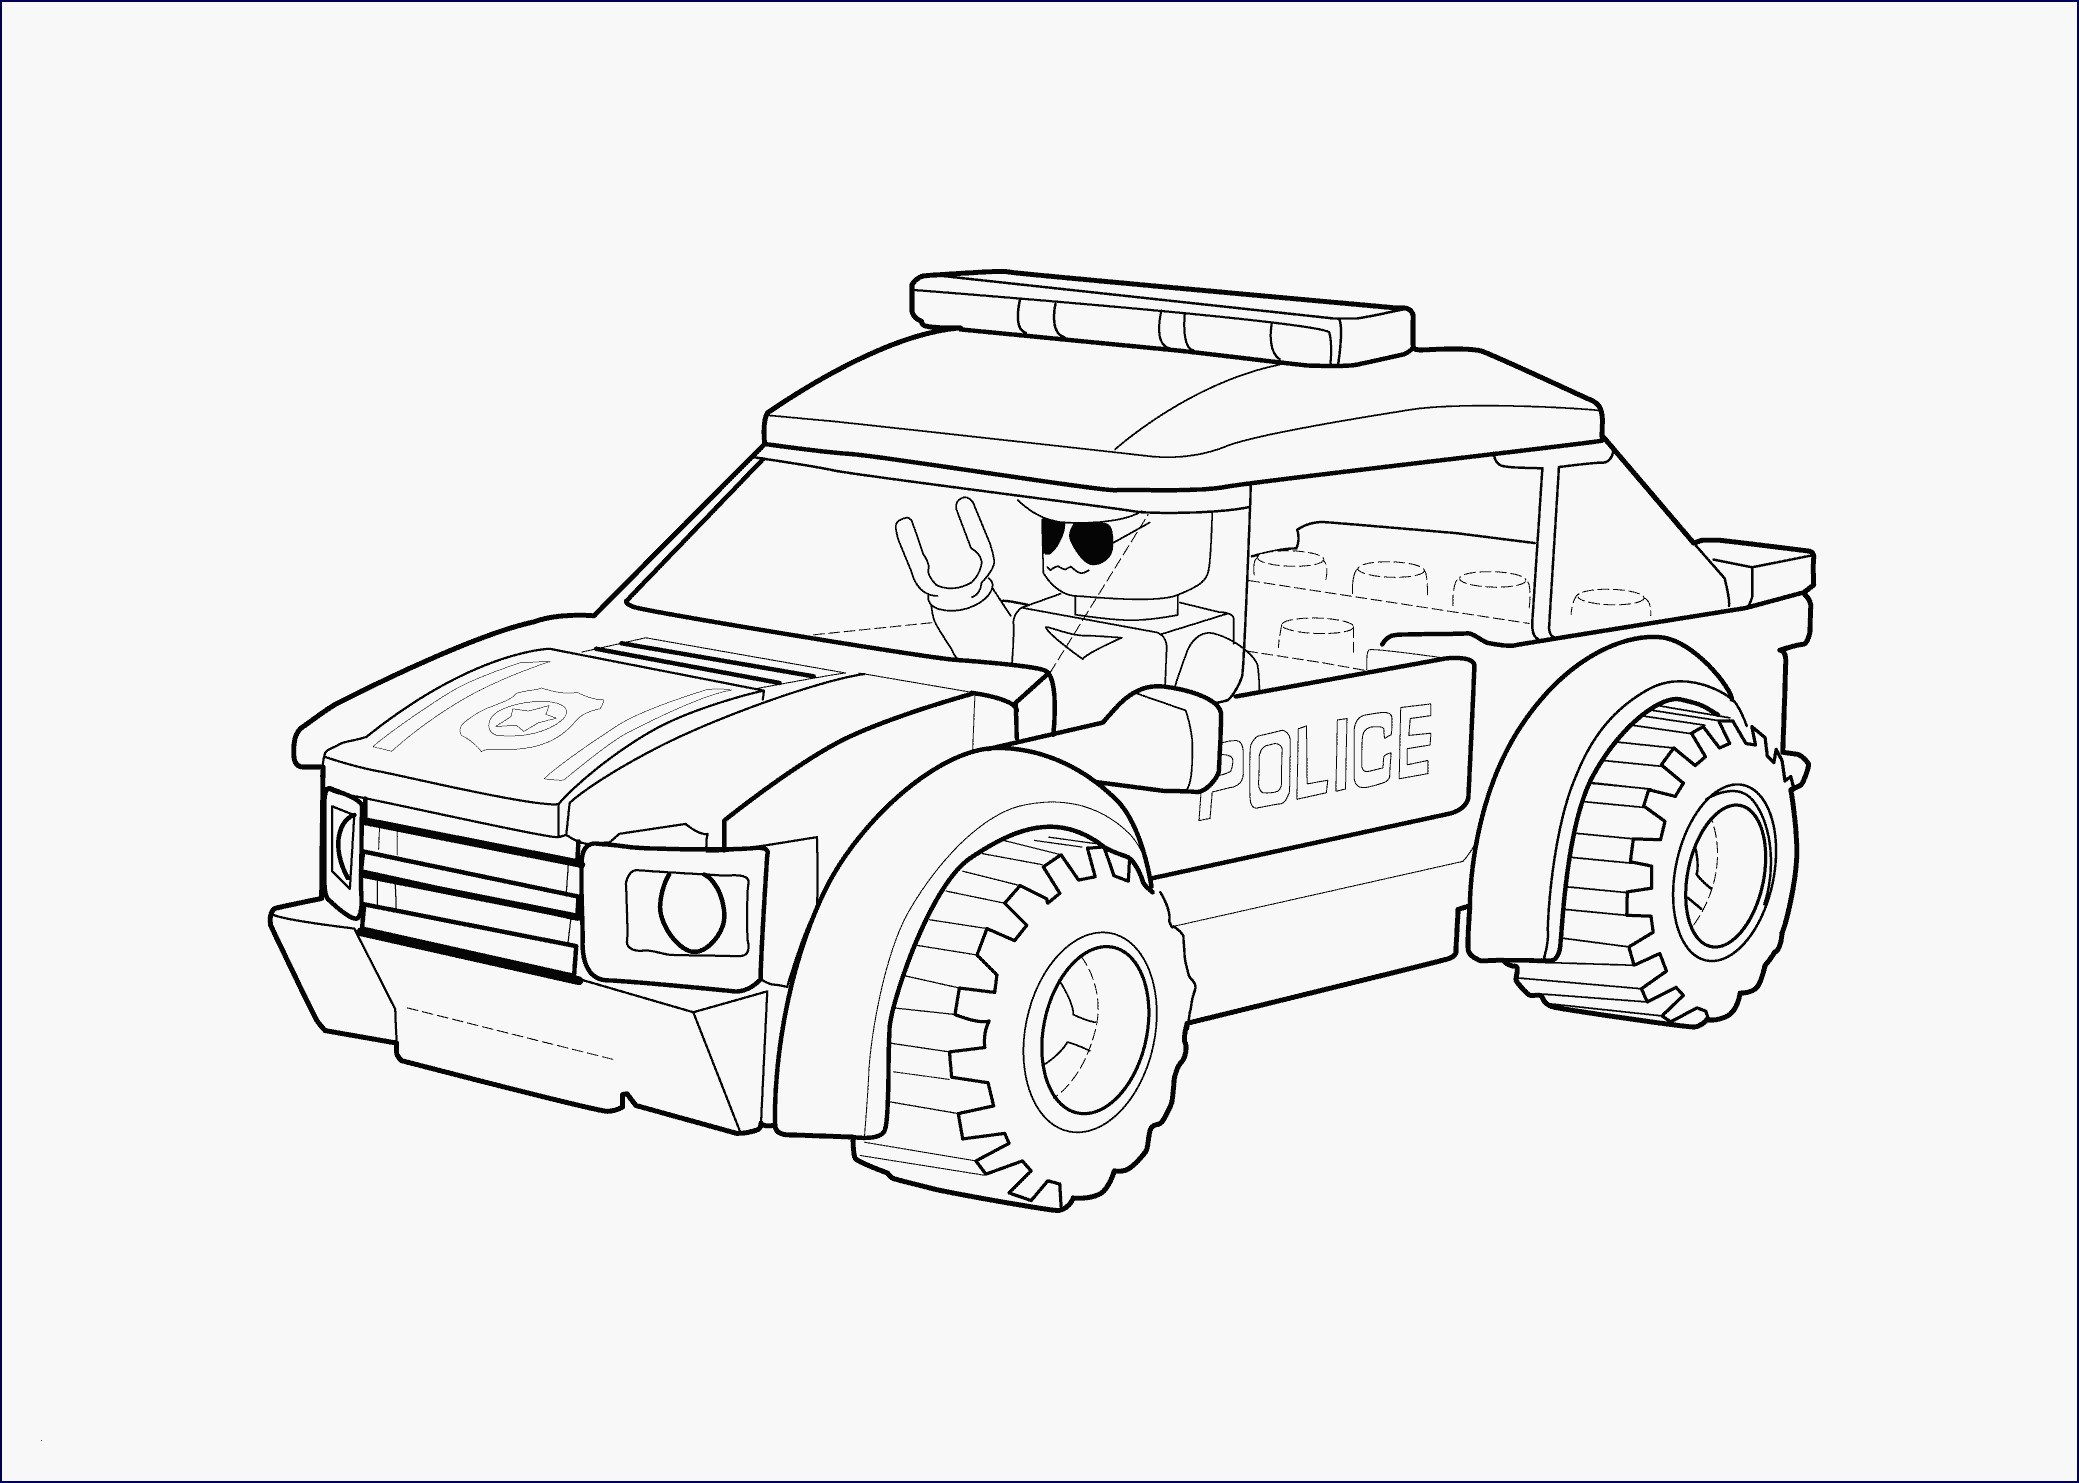 lego police coloring pages Download-14 Fresh Lego Space Police Coloring Pages graph 19-g